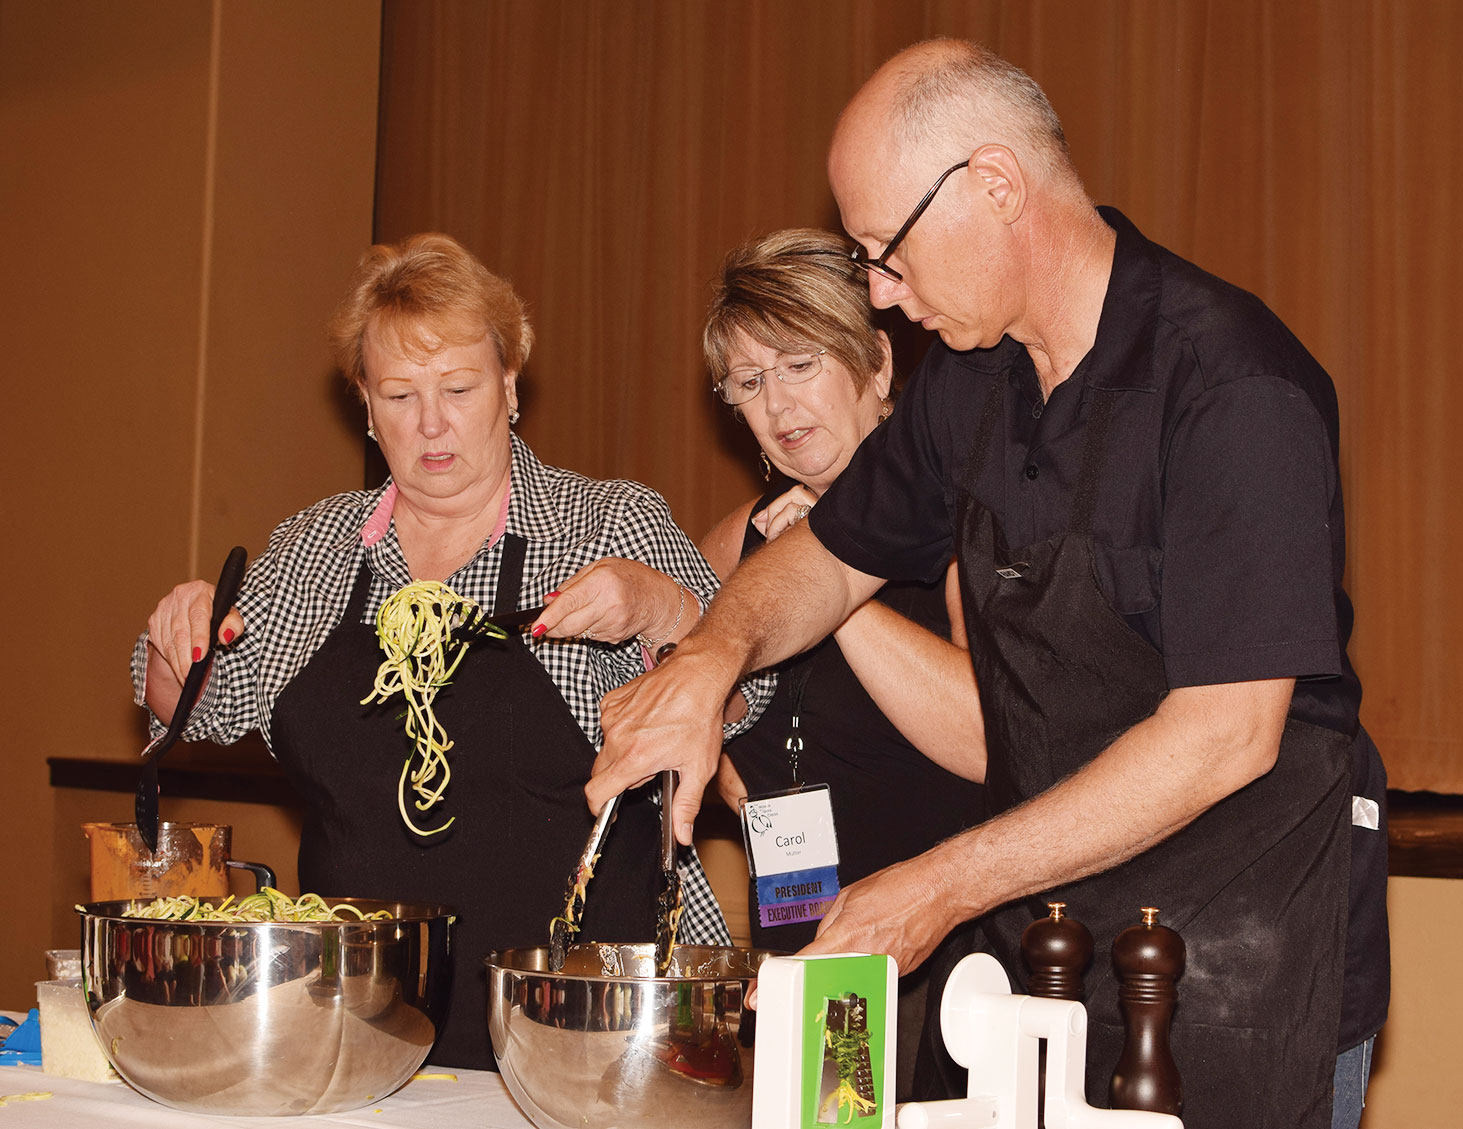 Jeri Hoyle and Randy Wade prepare spiralized salad with the assistance of Carol Mutter; photo by Eileen Sykora